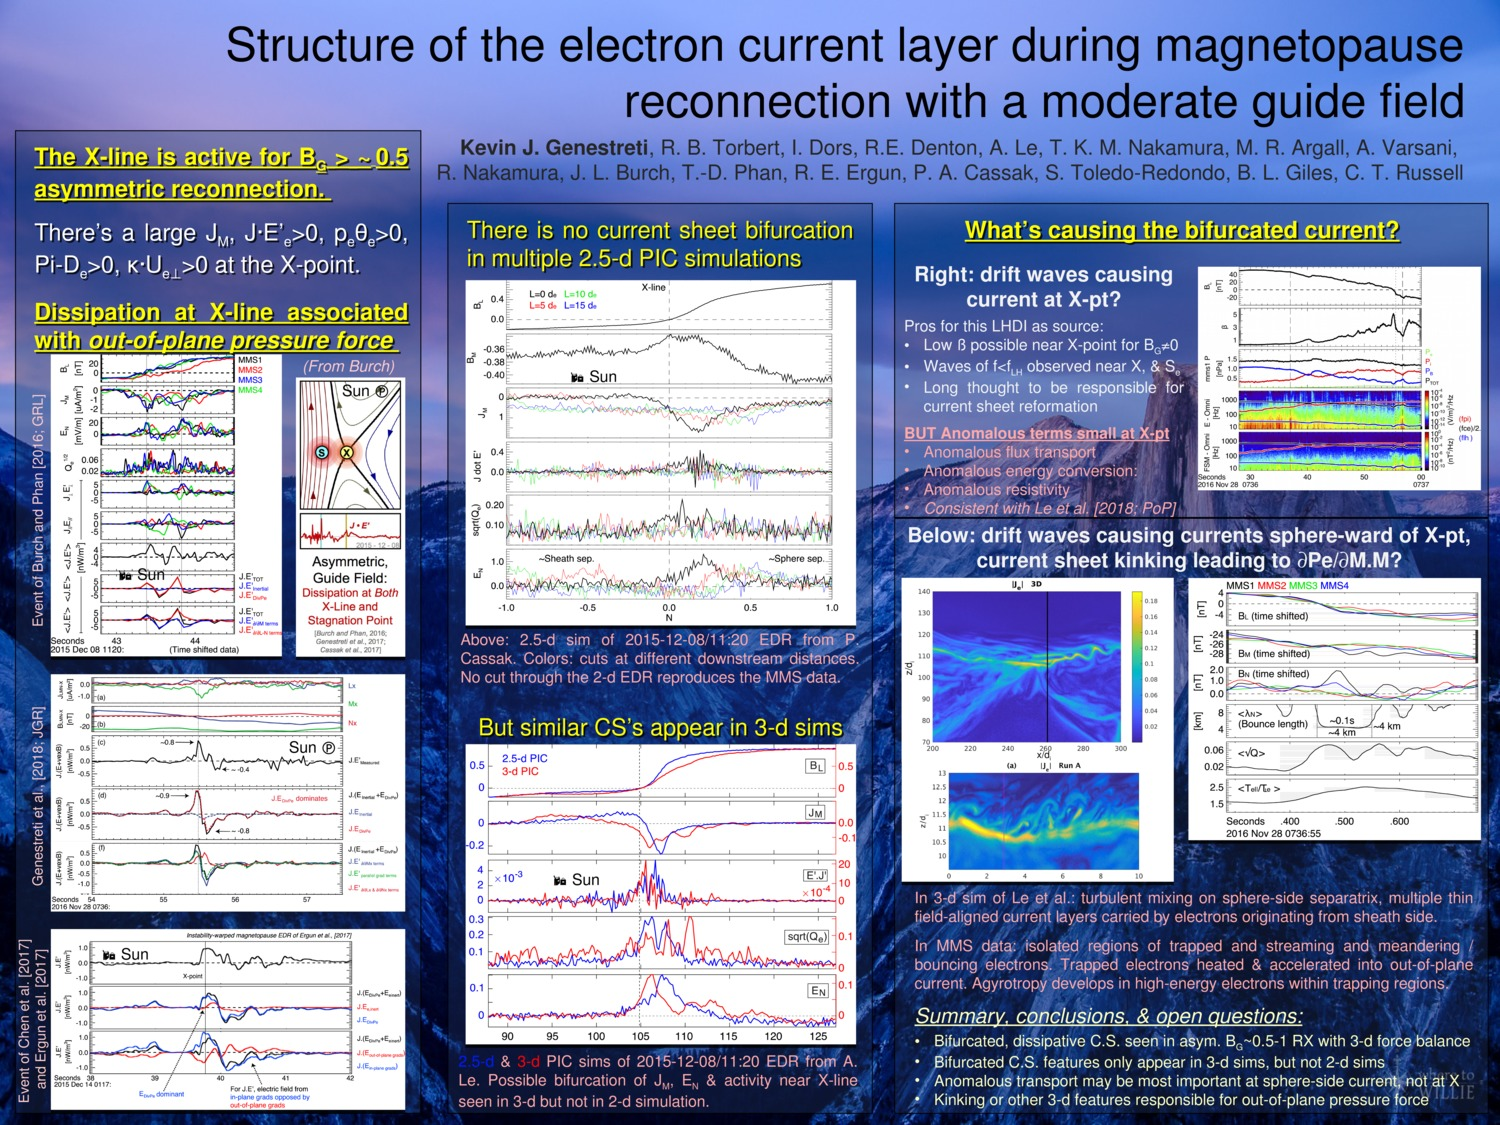 Structure Of The Electron Current Layer During Magnetopause Reconnection With A Moderate Guide Field by kevingenestreti